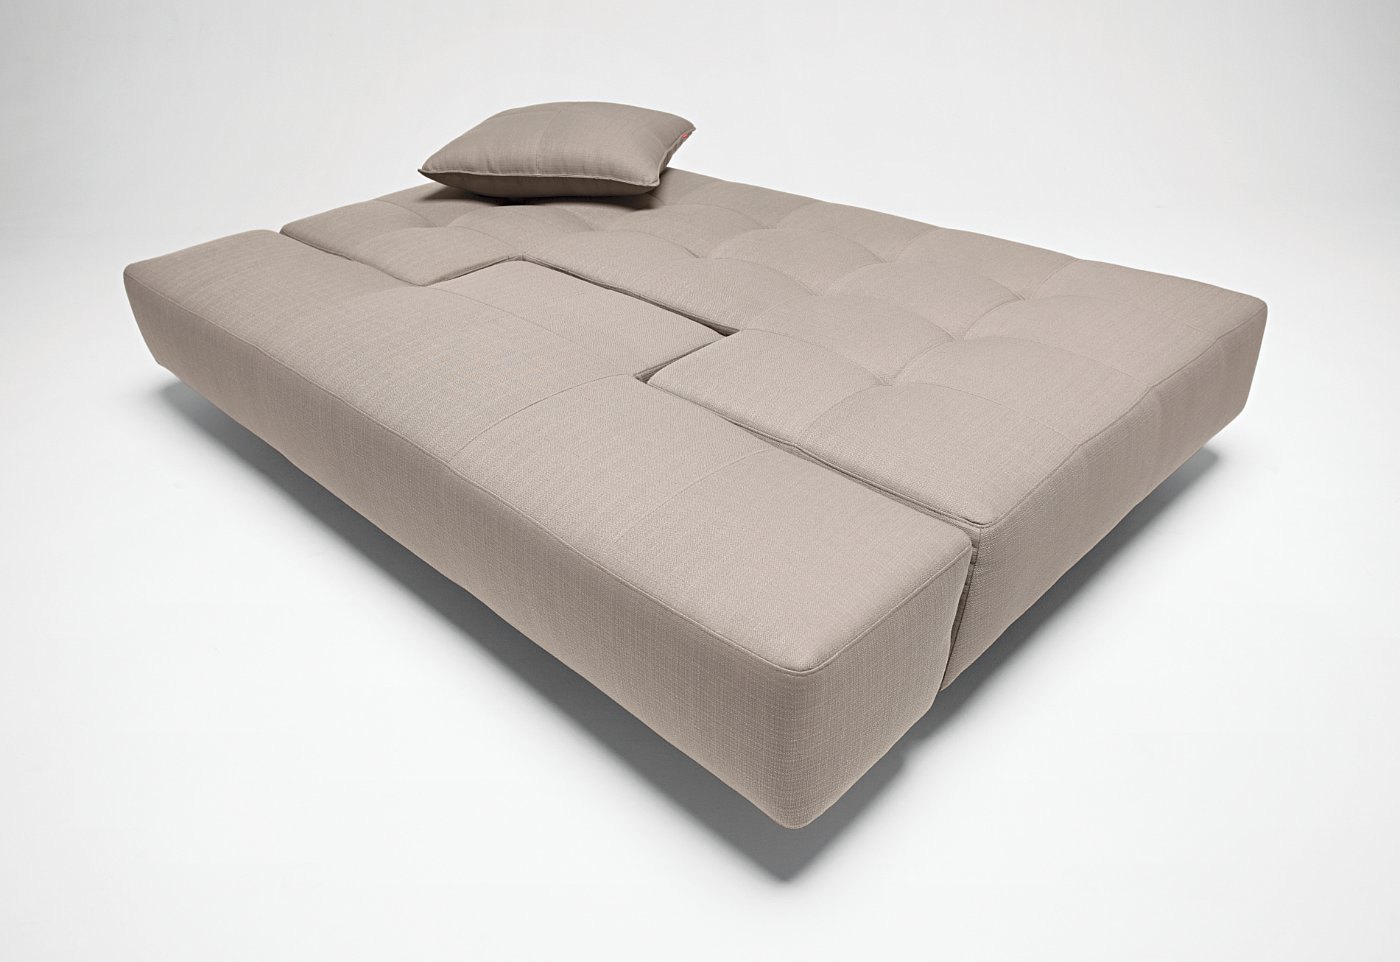 Sofa Beds With Thick Mattress Multifunction Thick Folding Foam Bed Mattress Sofa All Thesofa